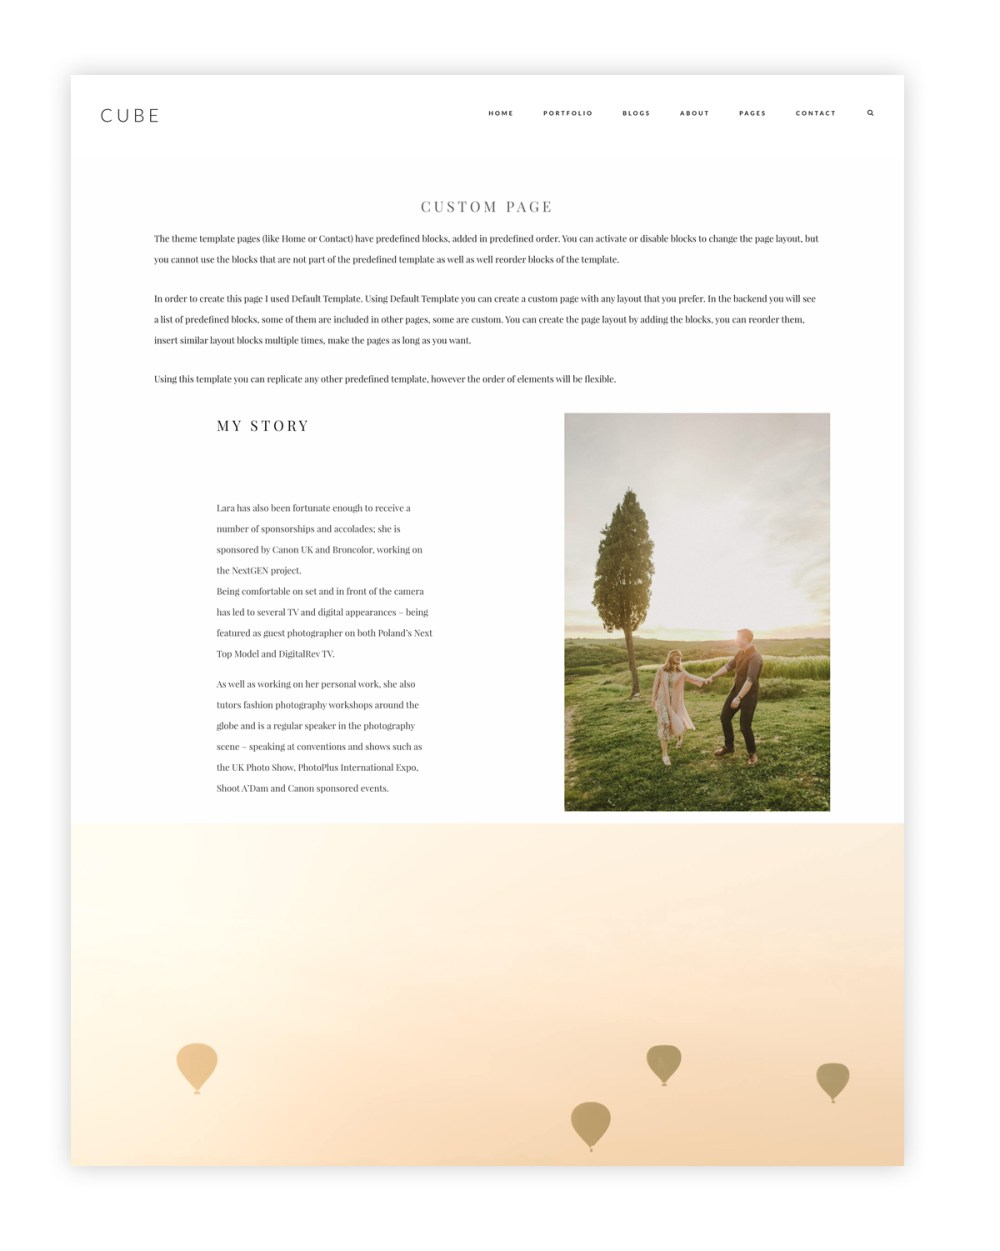 cube-wordpress website theme for photographers and videographers, custom page